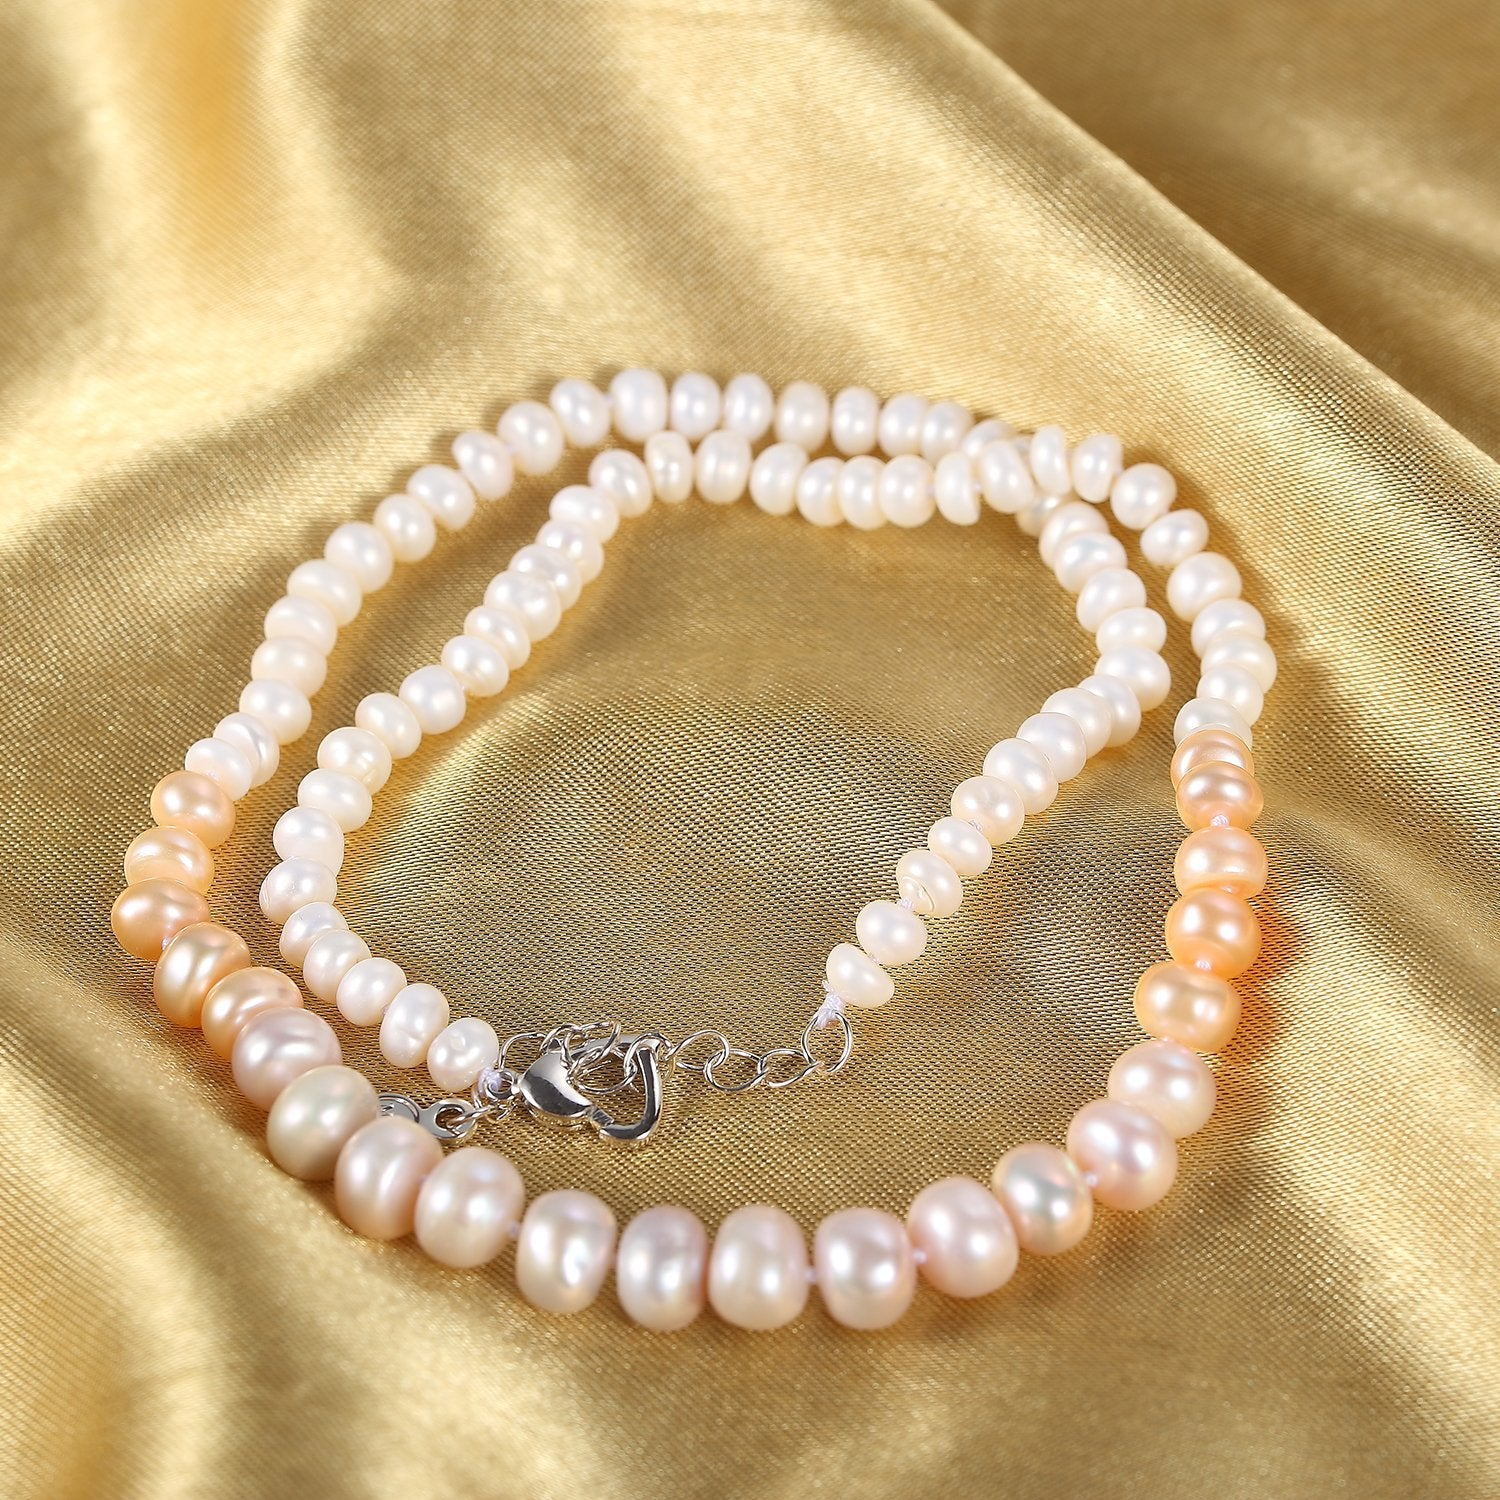 pearl majorca white on necklace de jewellery joia free by pearlnecklace duty board